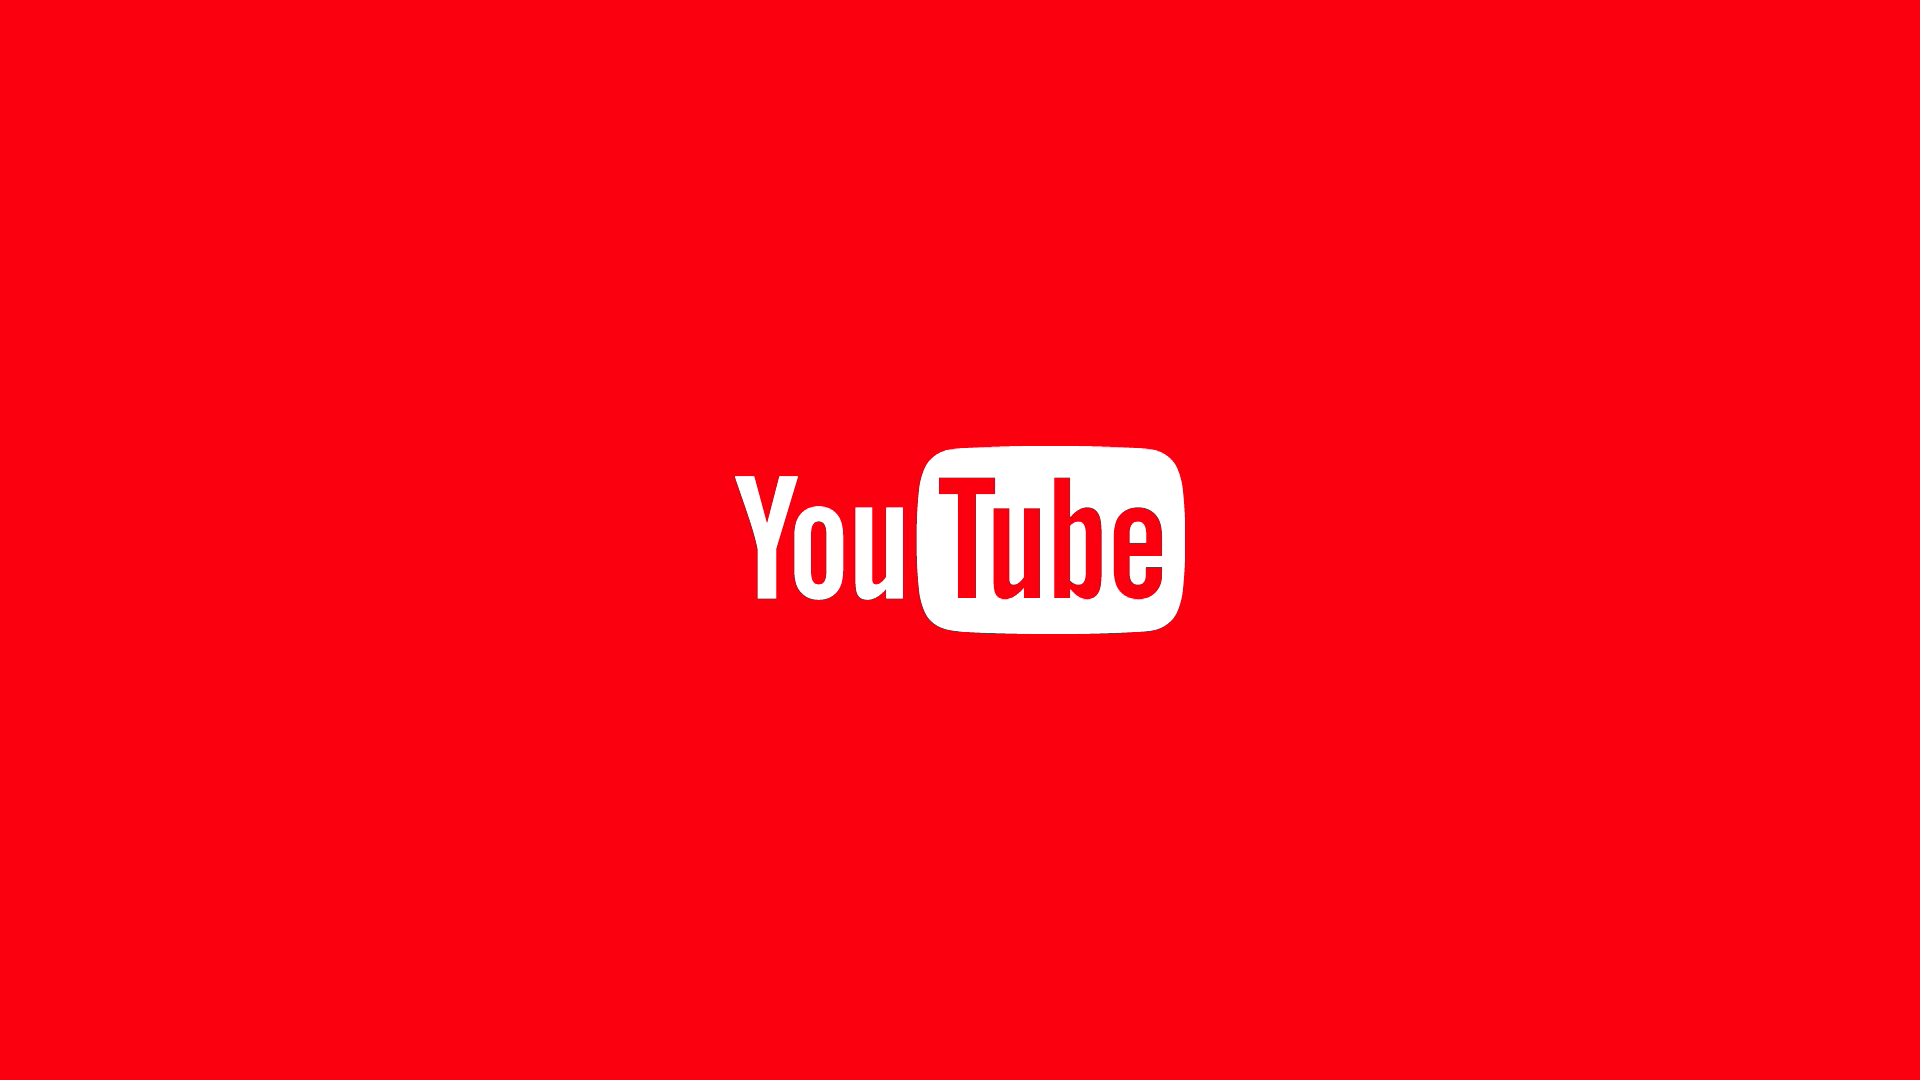 youtube logo full hd fondo de pantalla and fondo de